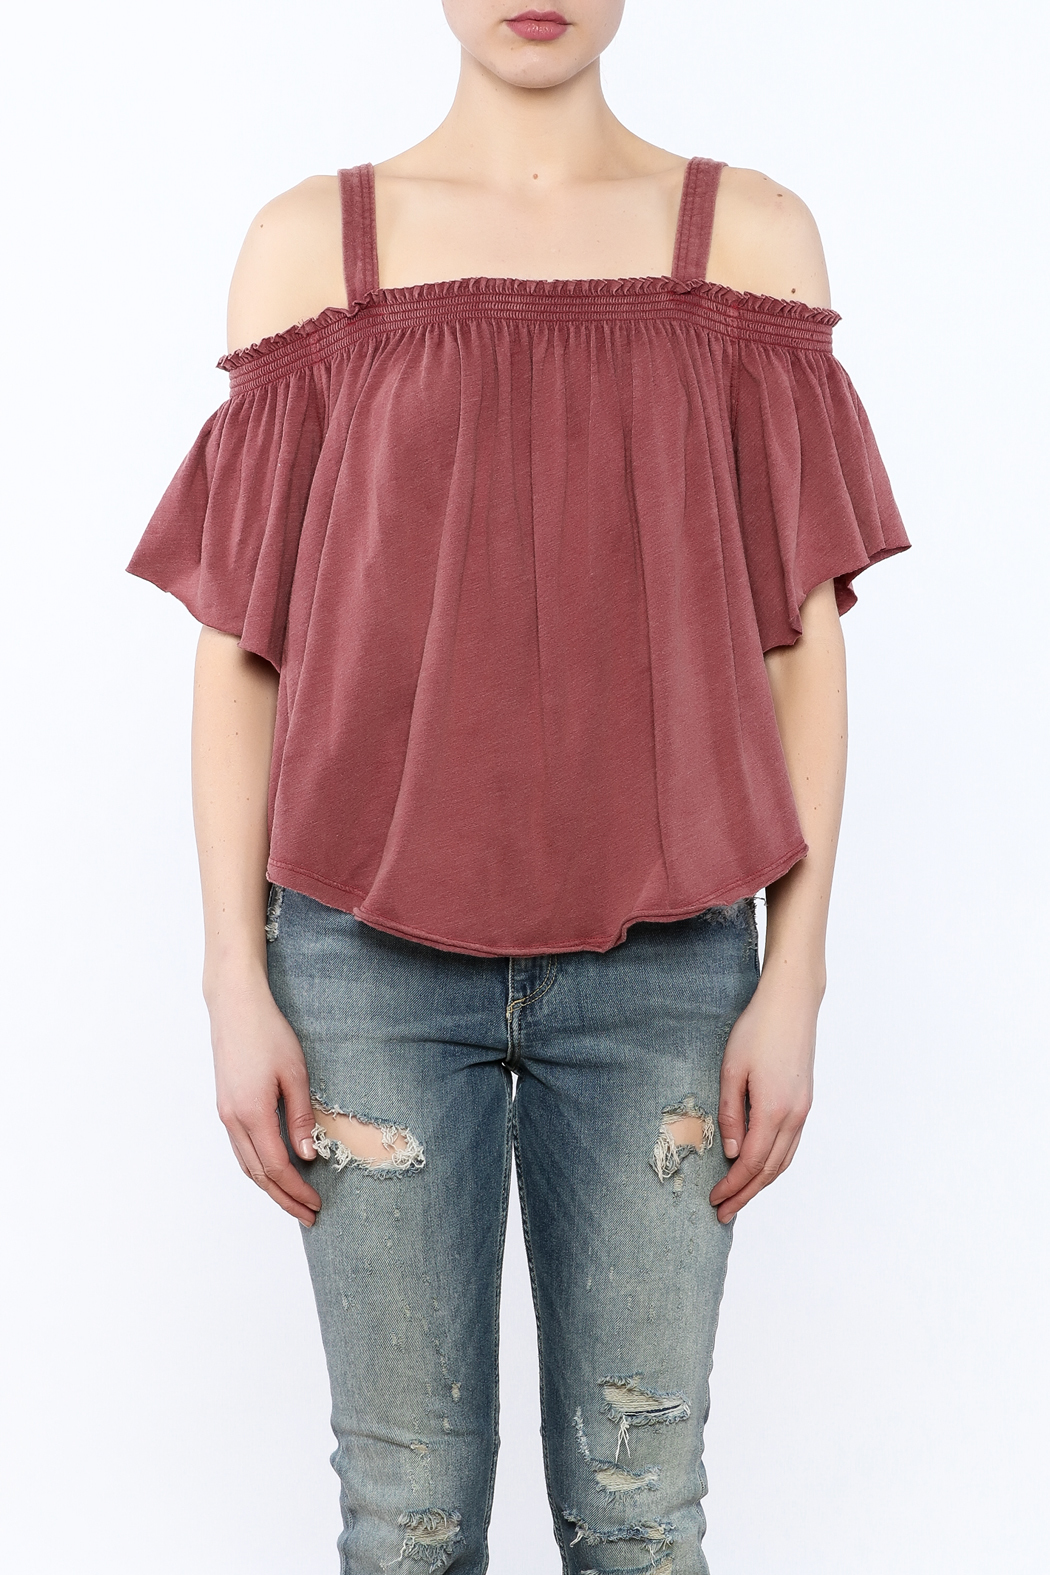 Free People Washed Maroon Top - Side Cropped Image